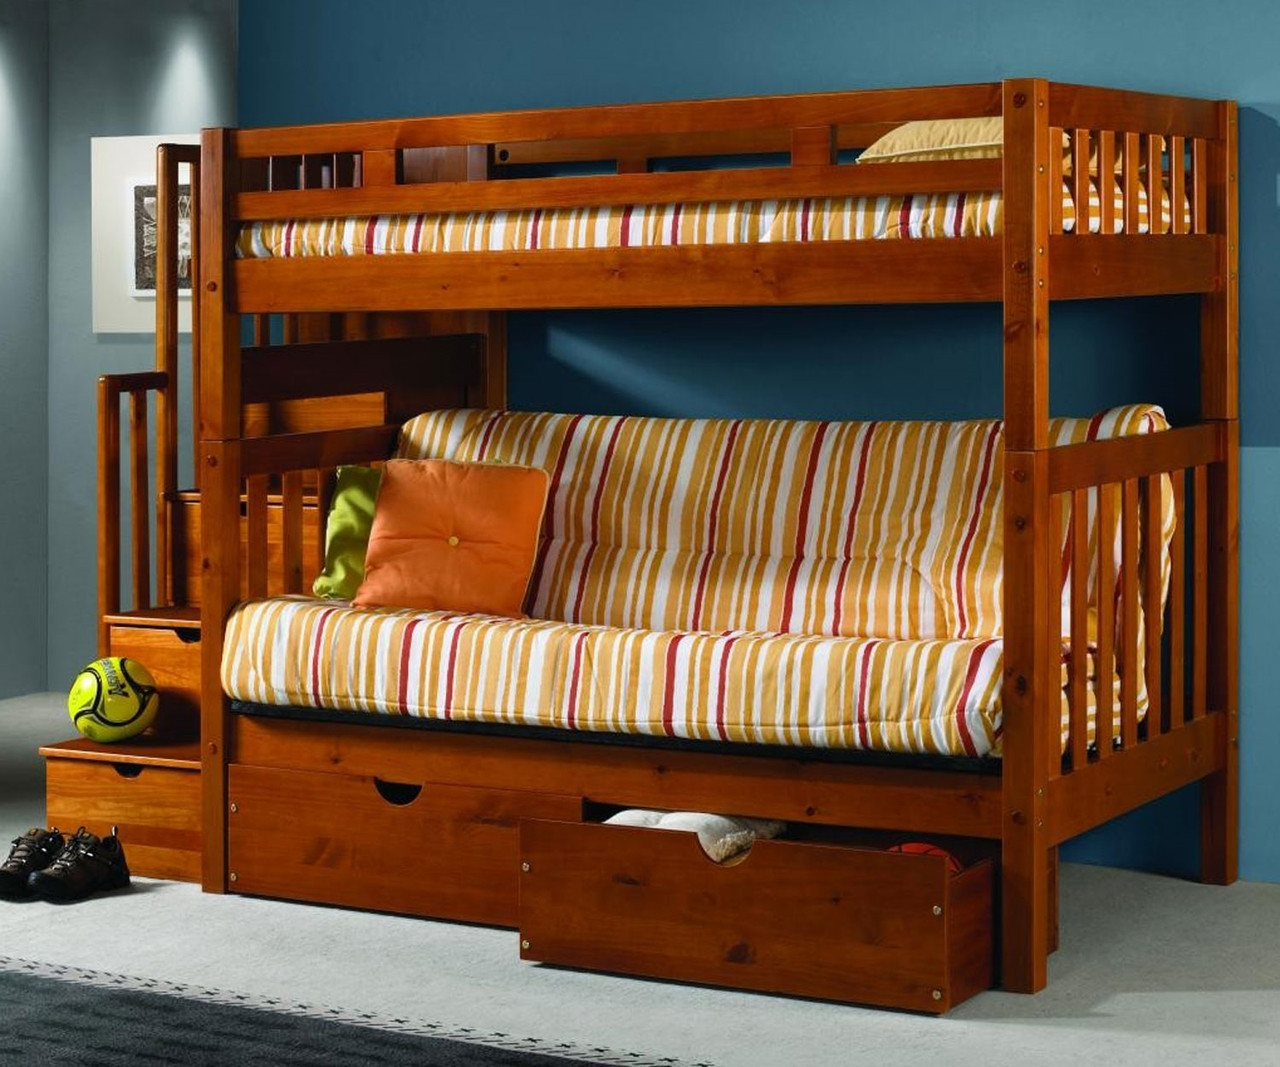 Donco Trading Mission Stairway Futon Bunk Bed 200 Abcdefgh